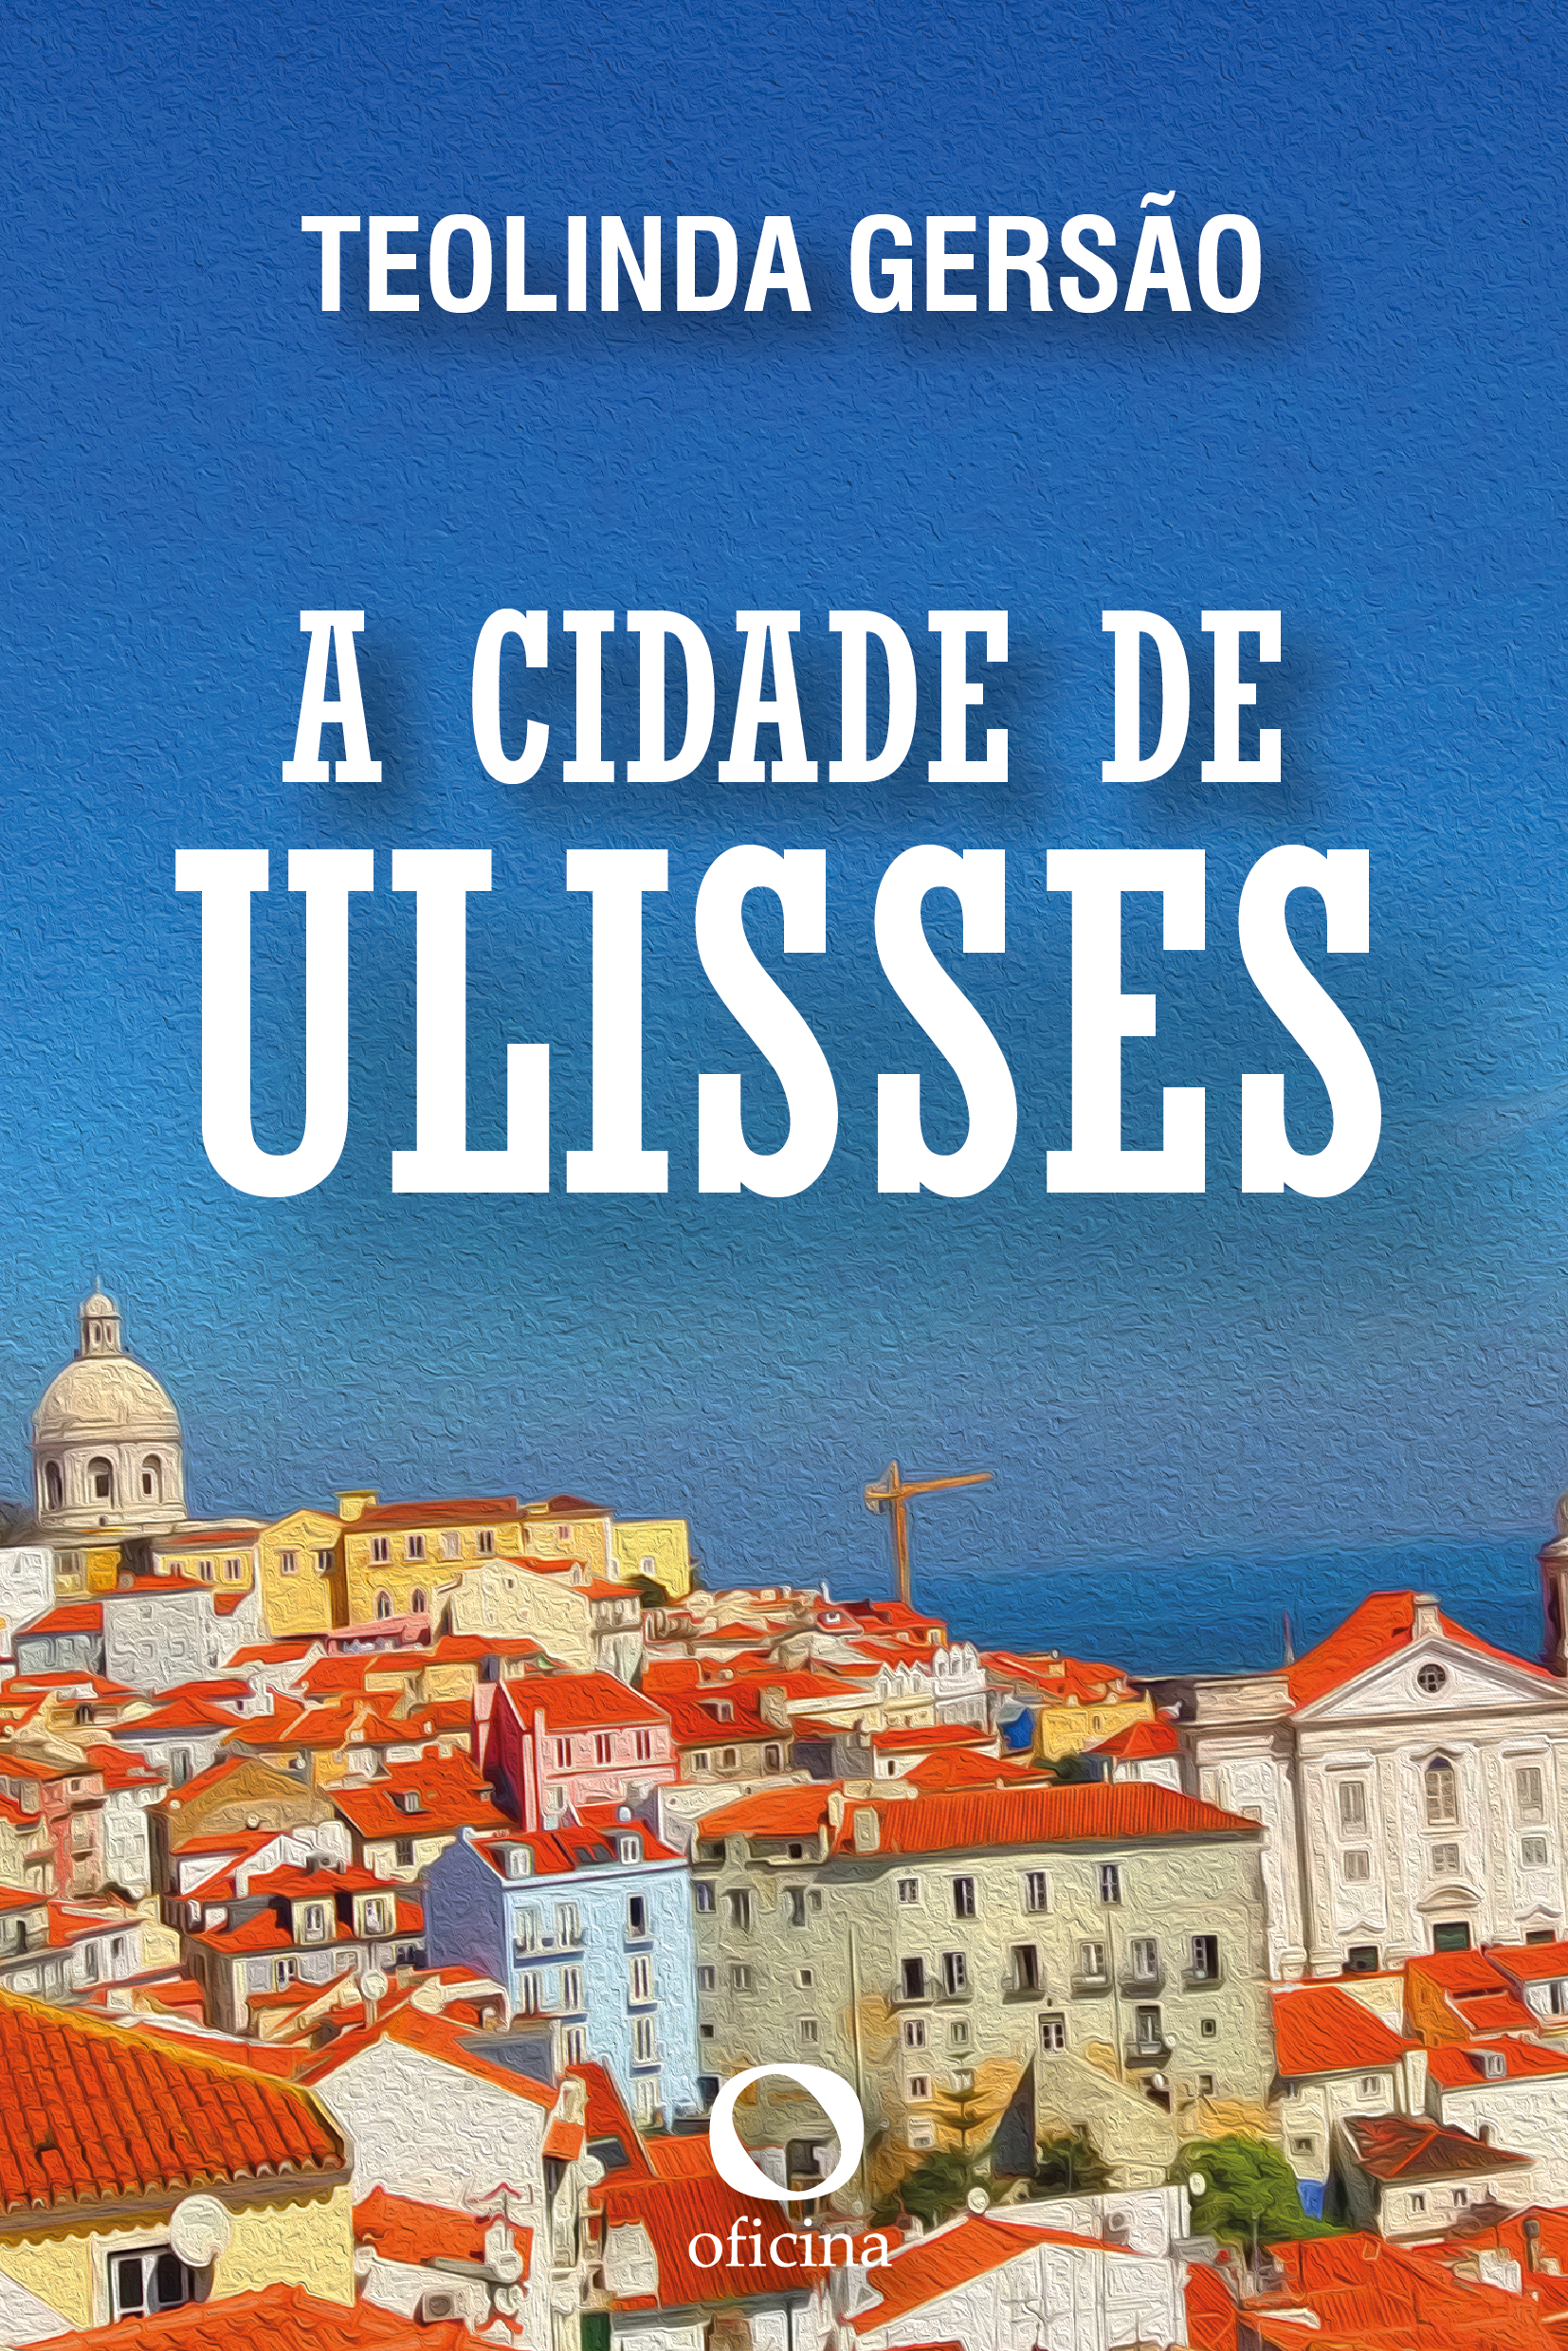 The city of Ulysses